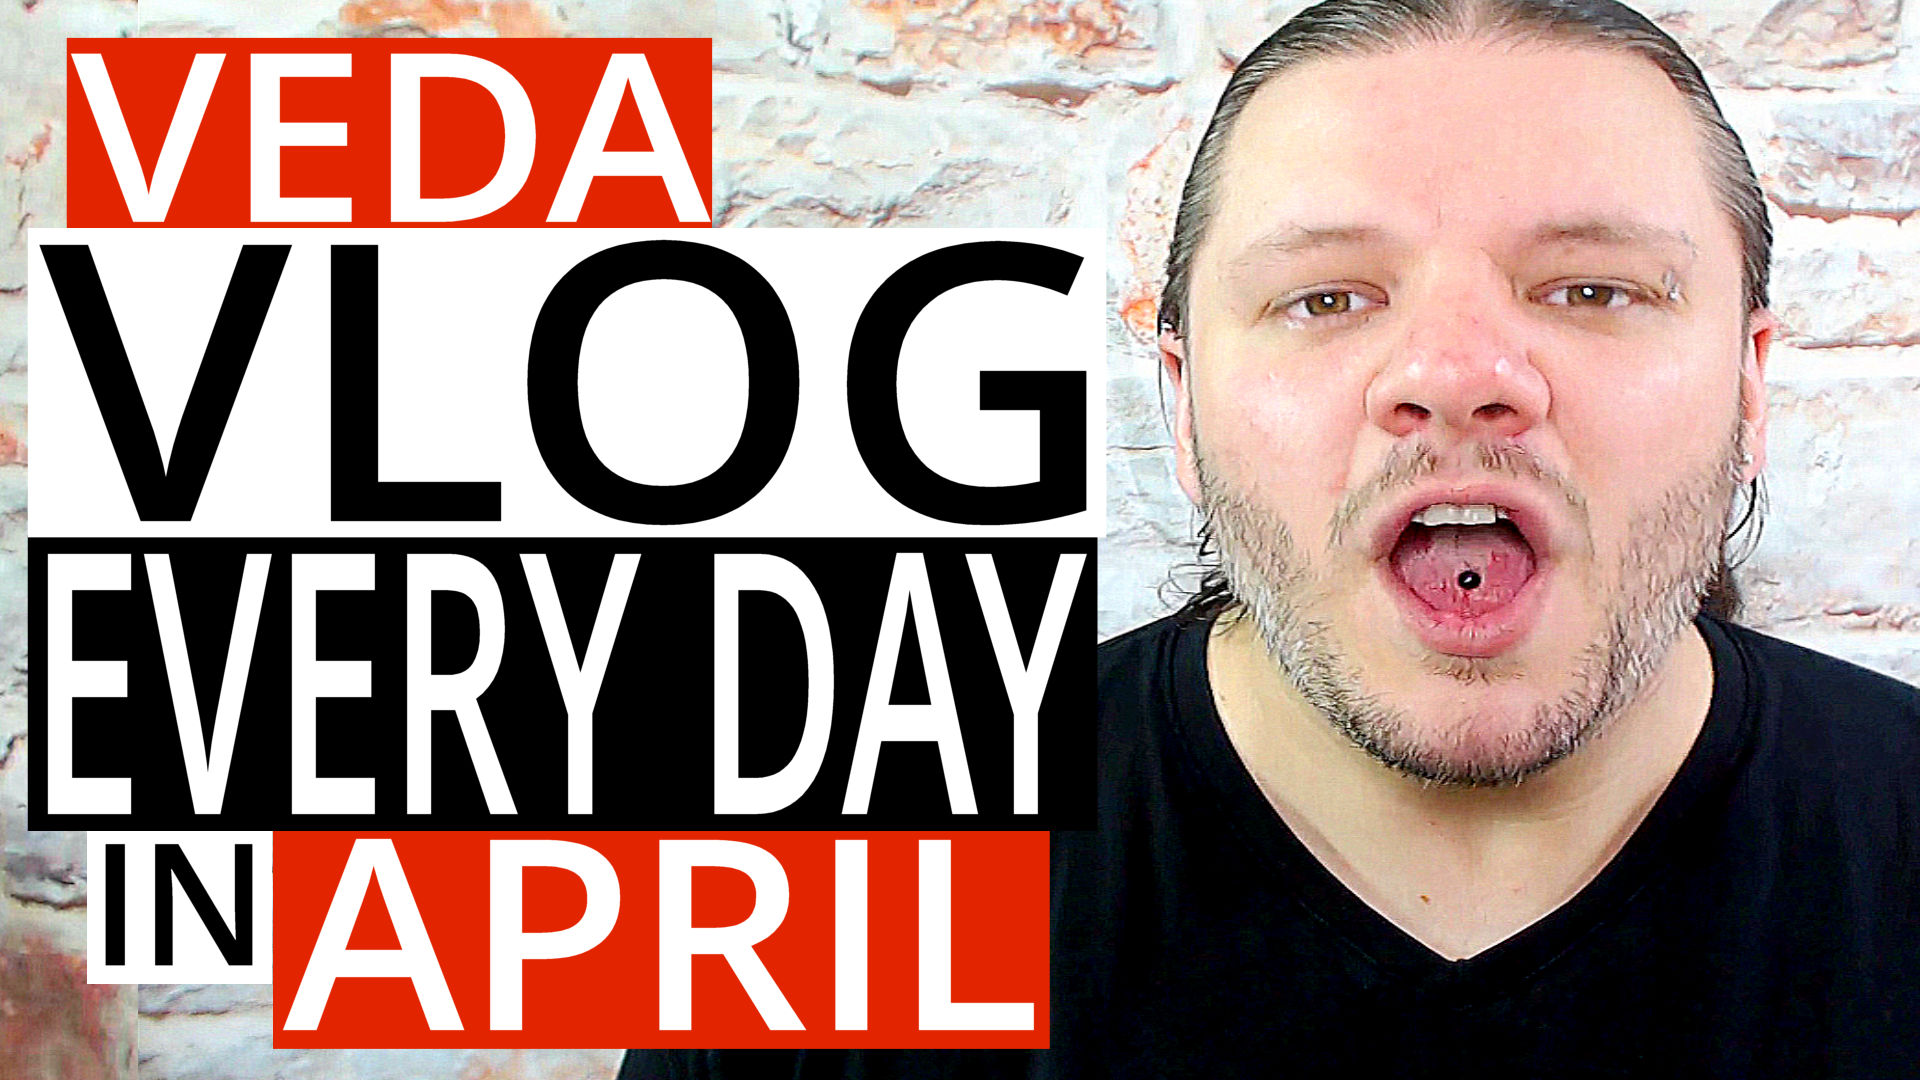 alan spicer,alanspicer,youtube tips,youtube tricks,asyt,youtube tips 2018,What Is VEDA?,veda,what is veda youtube,what is veda short for,what is veda on youtube,sssveda,sssveda 2018,vlog everyday in april,vlog everyday in april topics,vlog everyday in august,veda challenge,youtube veda,why you should do veda,why do veda,daily vlogging,vlogging,youtube,veda youtube,veda video ideas,veda ideas,veda topics